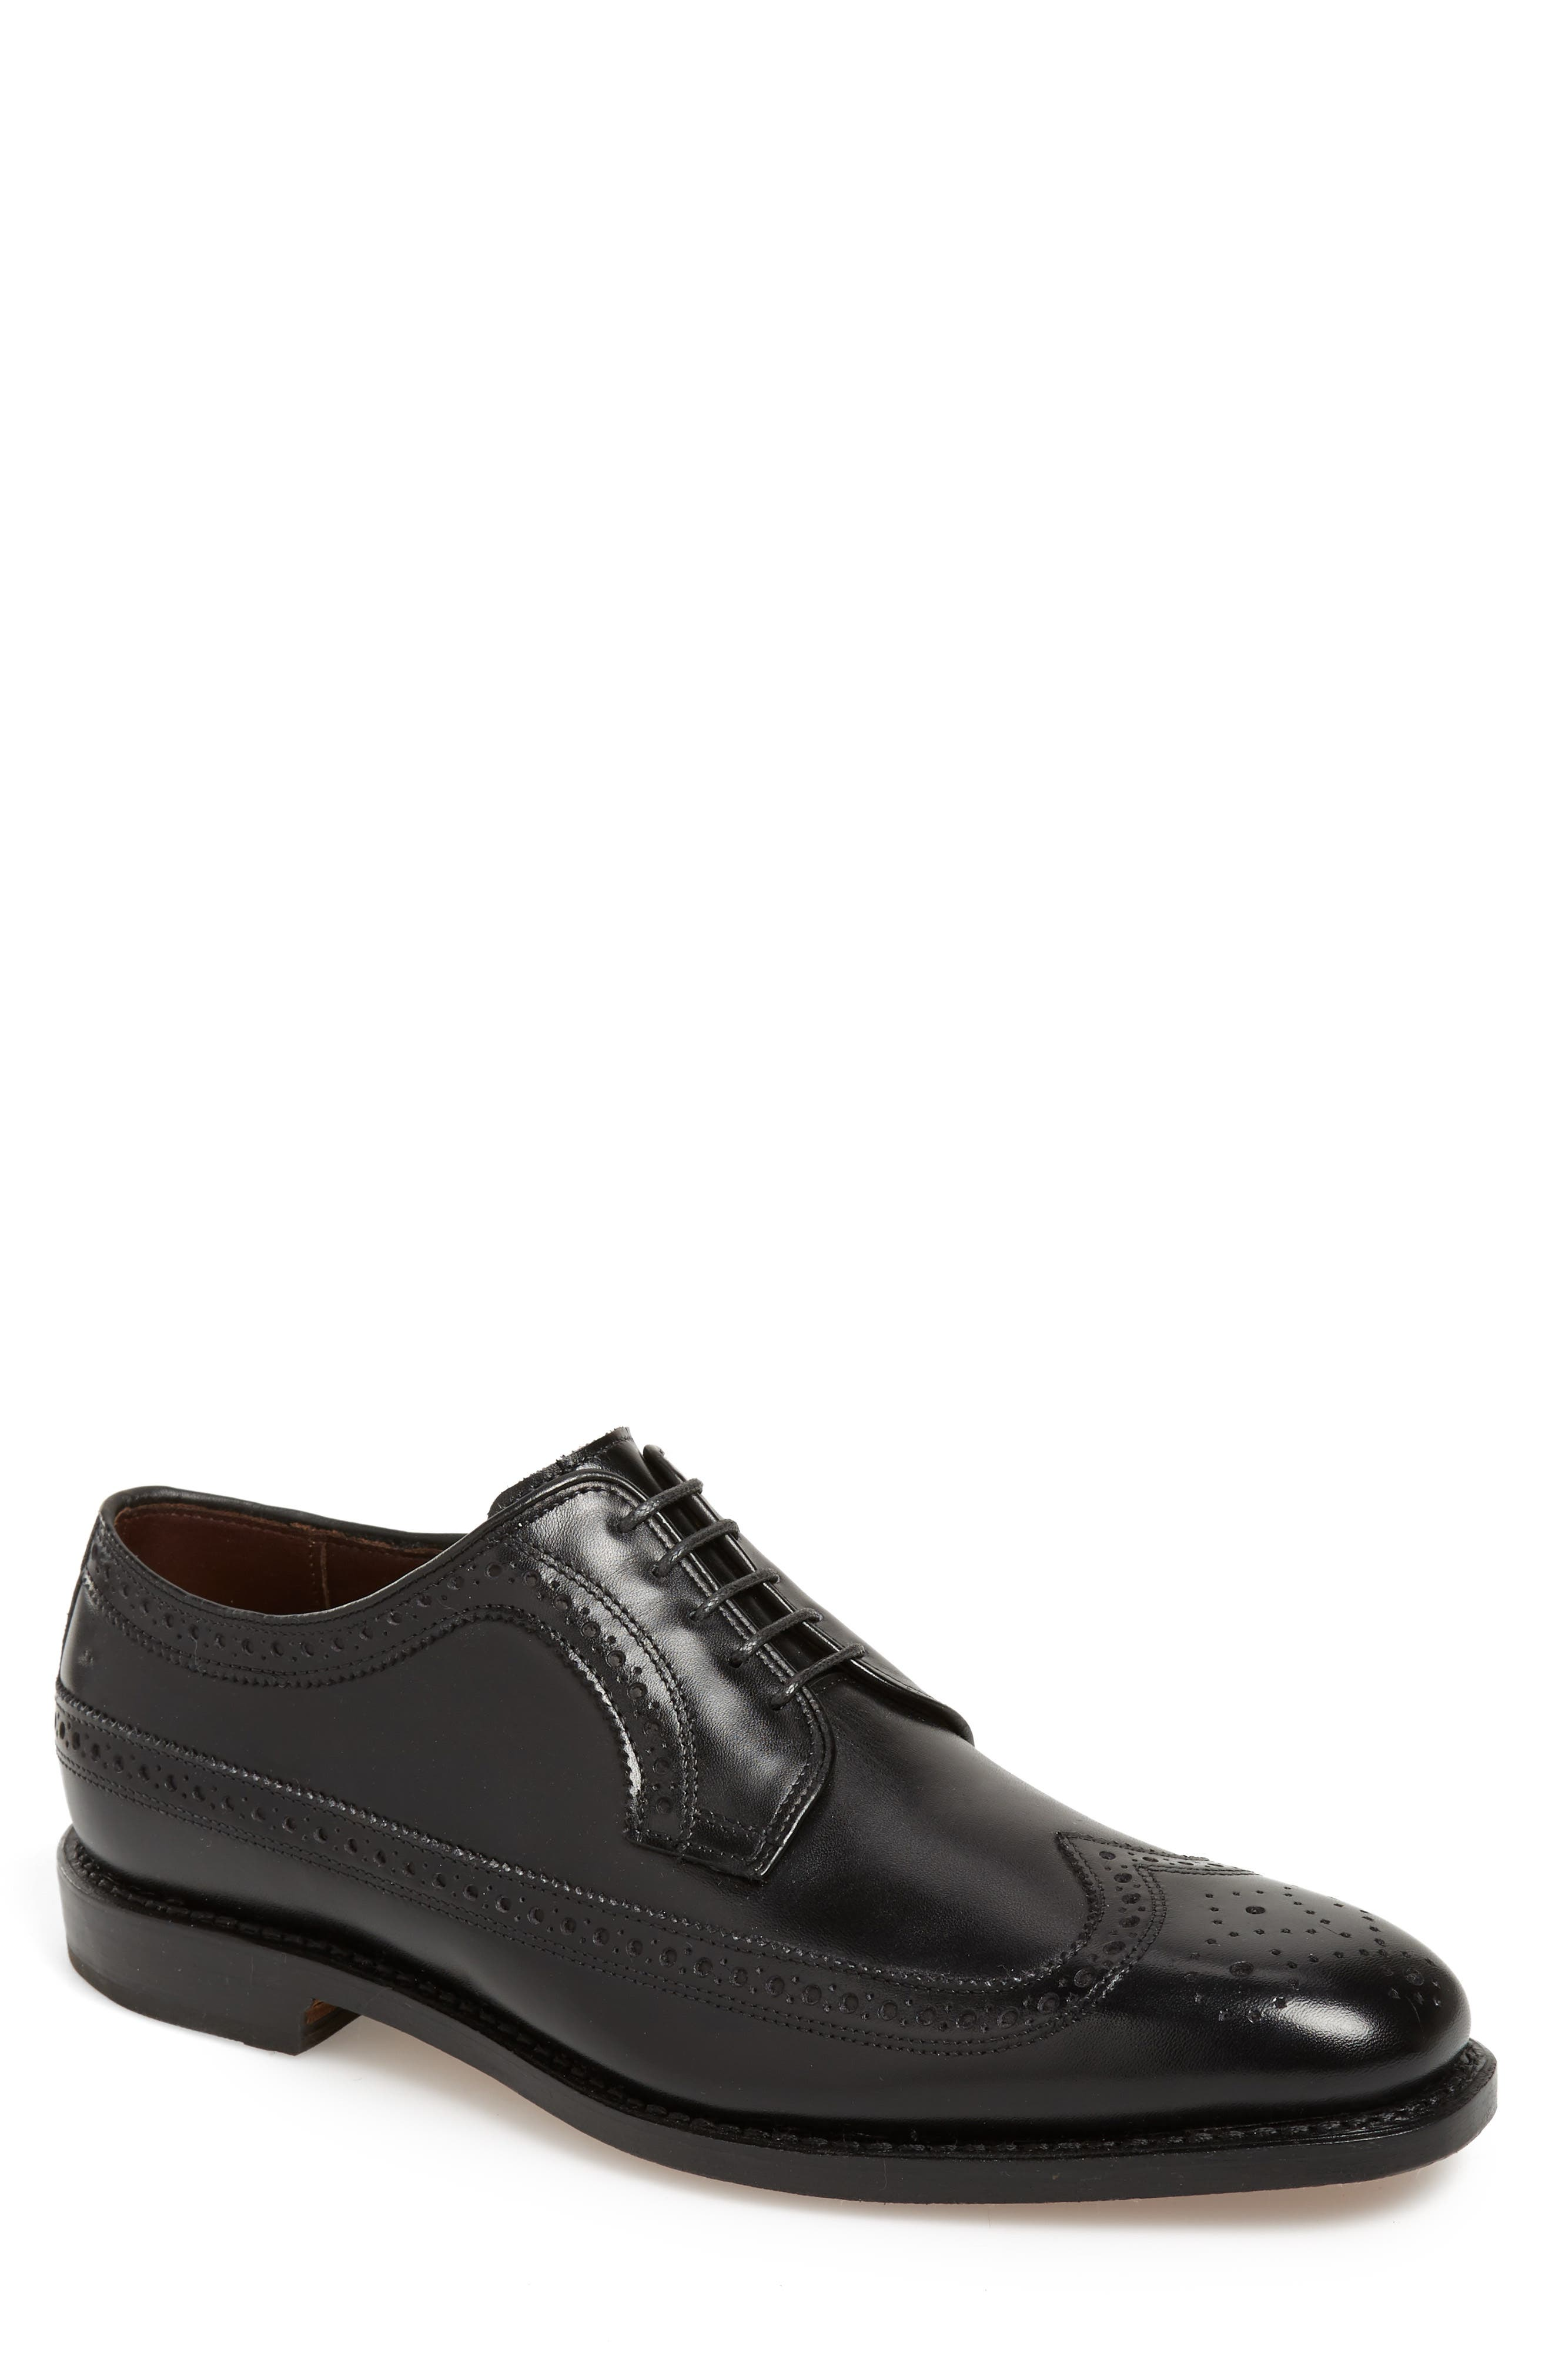 ALLEN EDMONDS Grandview Longwing Derby, Main, color, 001